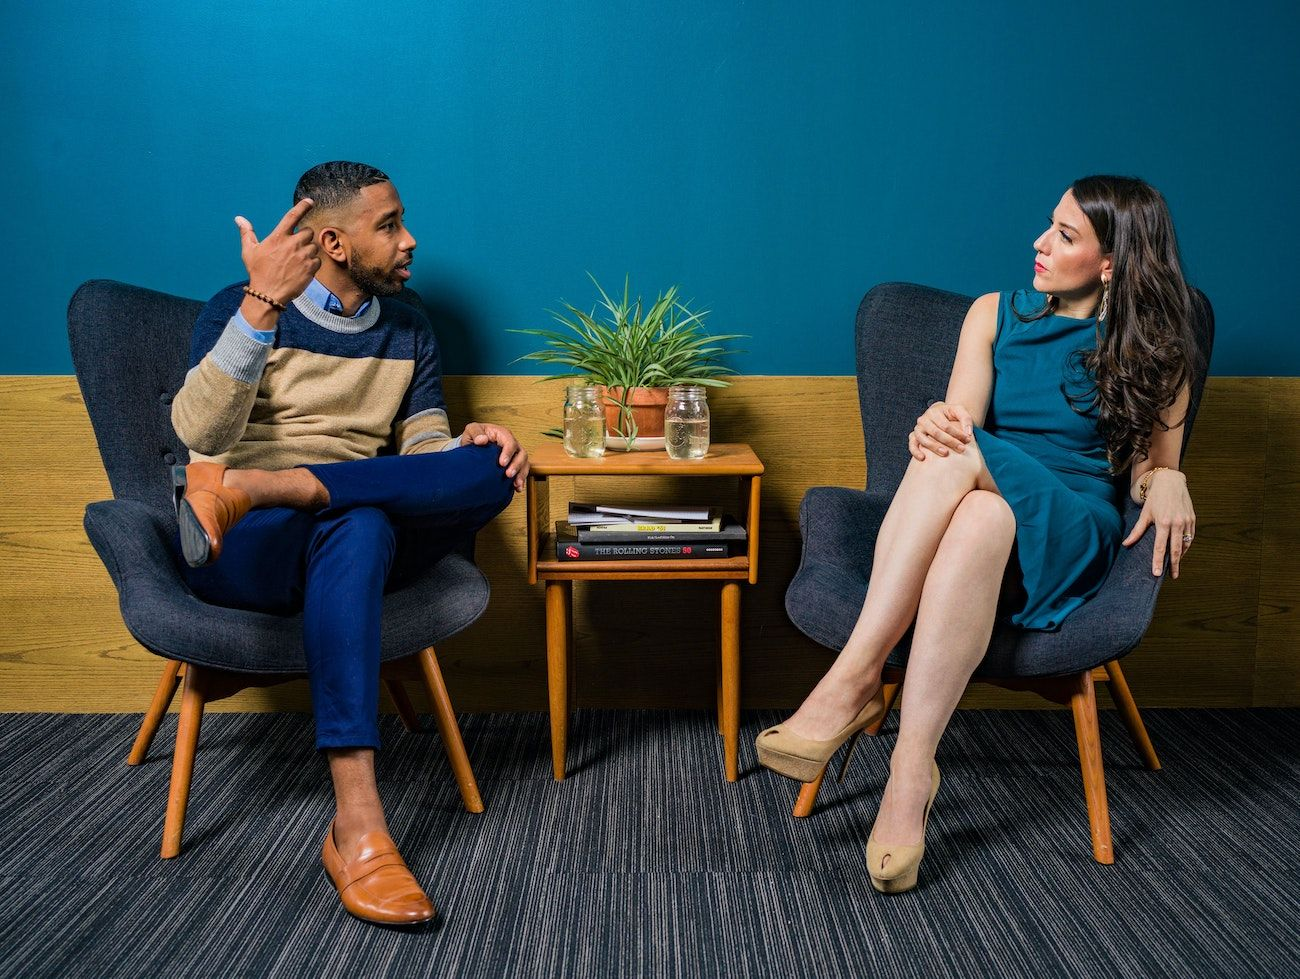 Avoid arguments: Therapists share how to politely disagree when lives are on the line